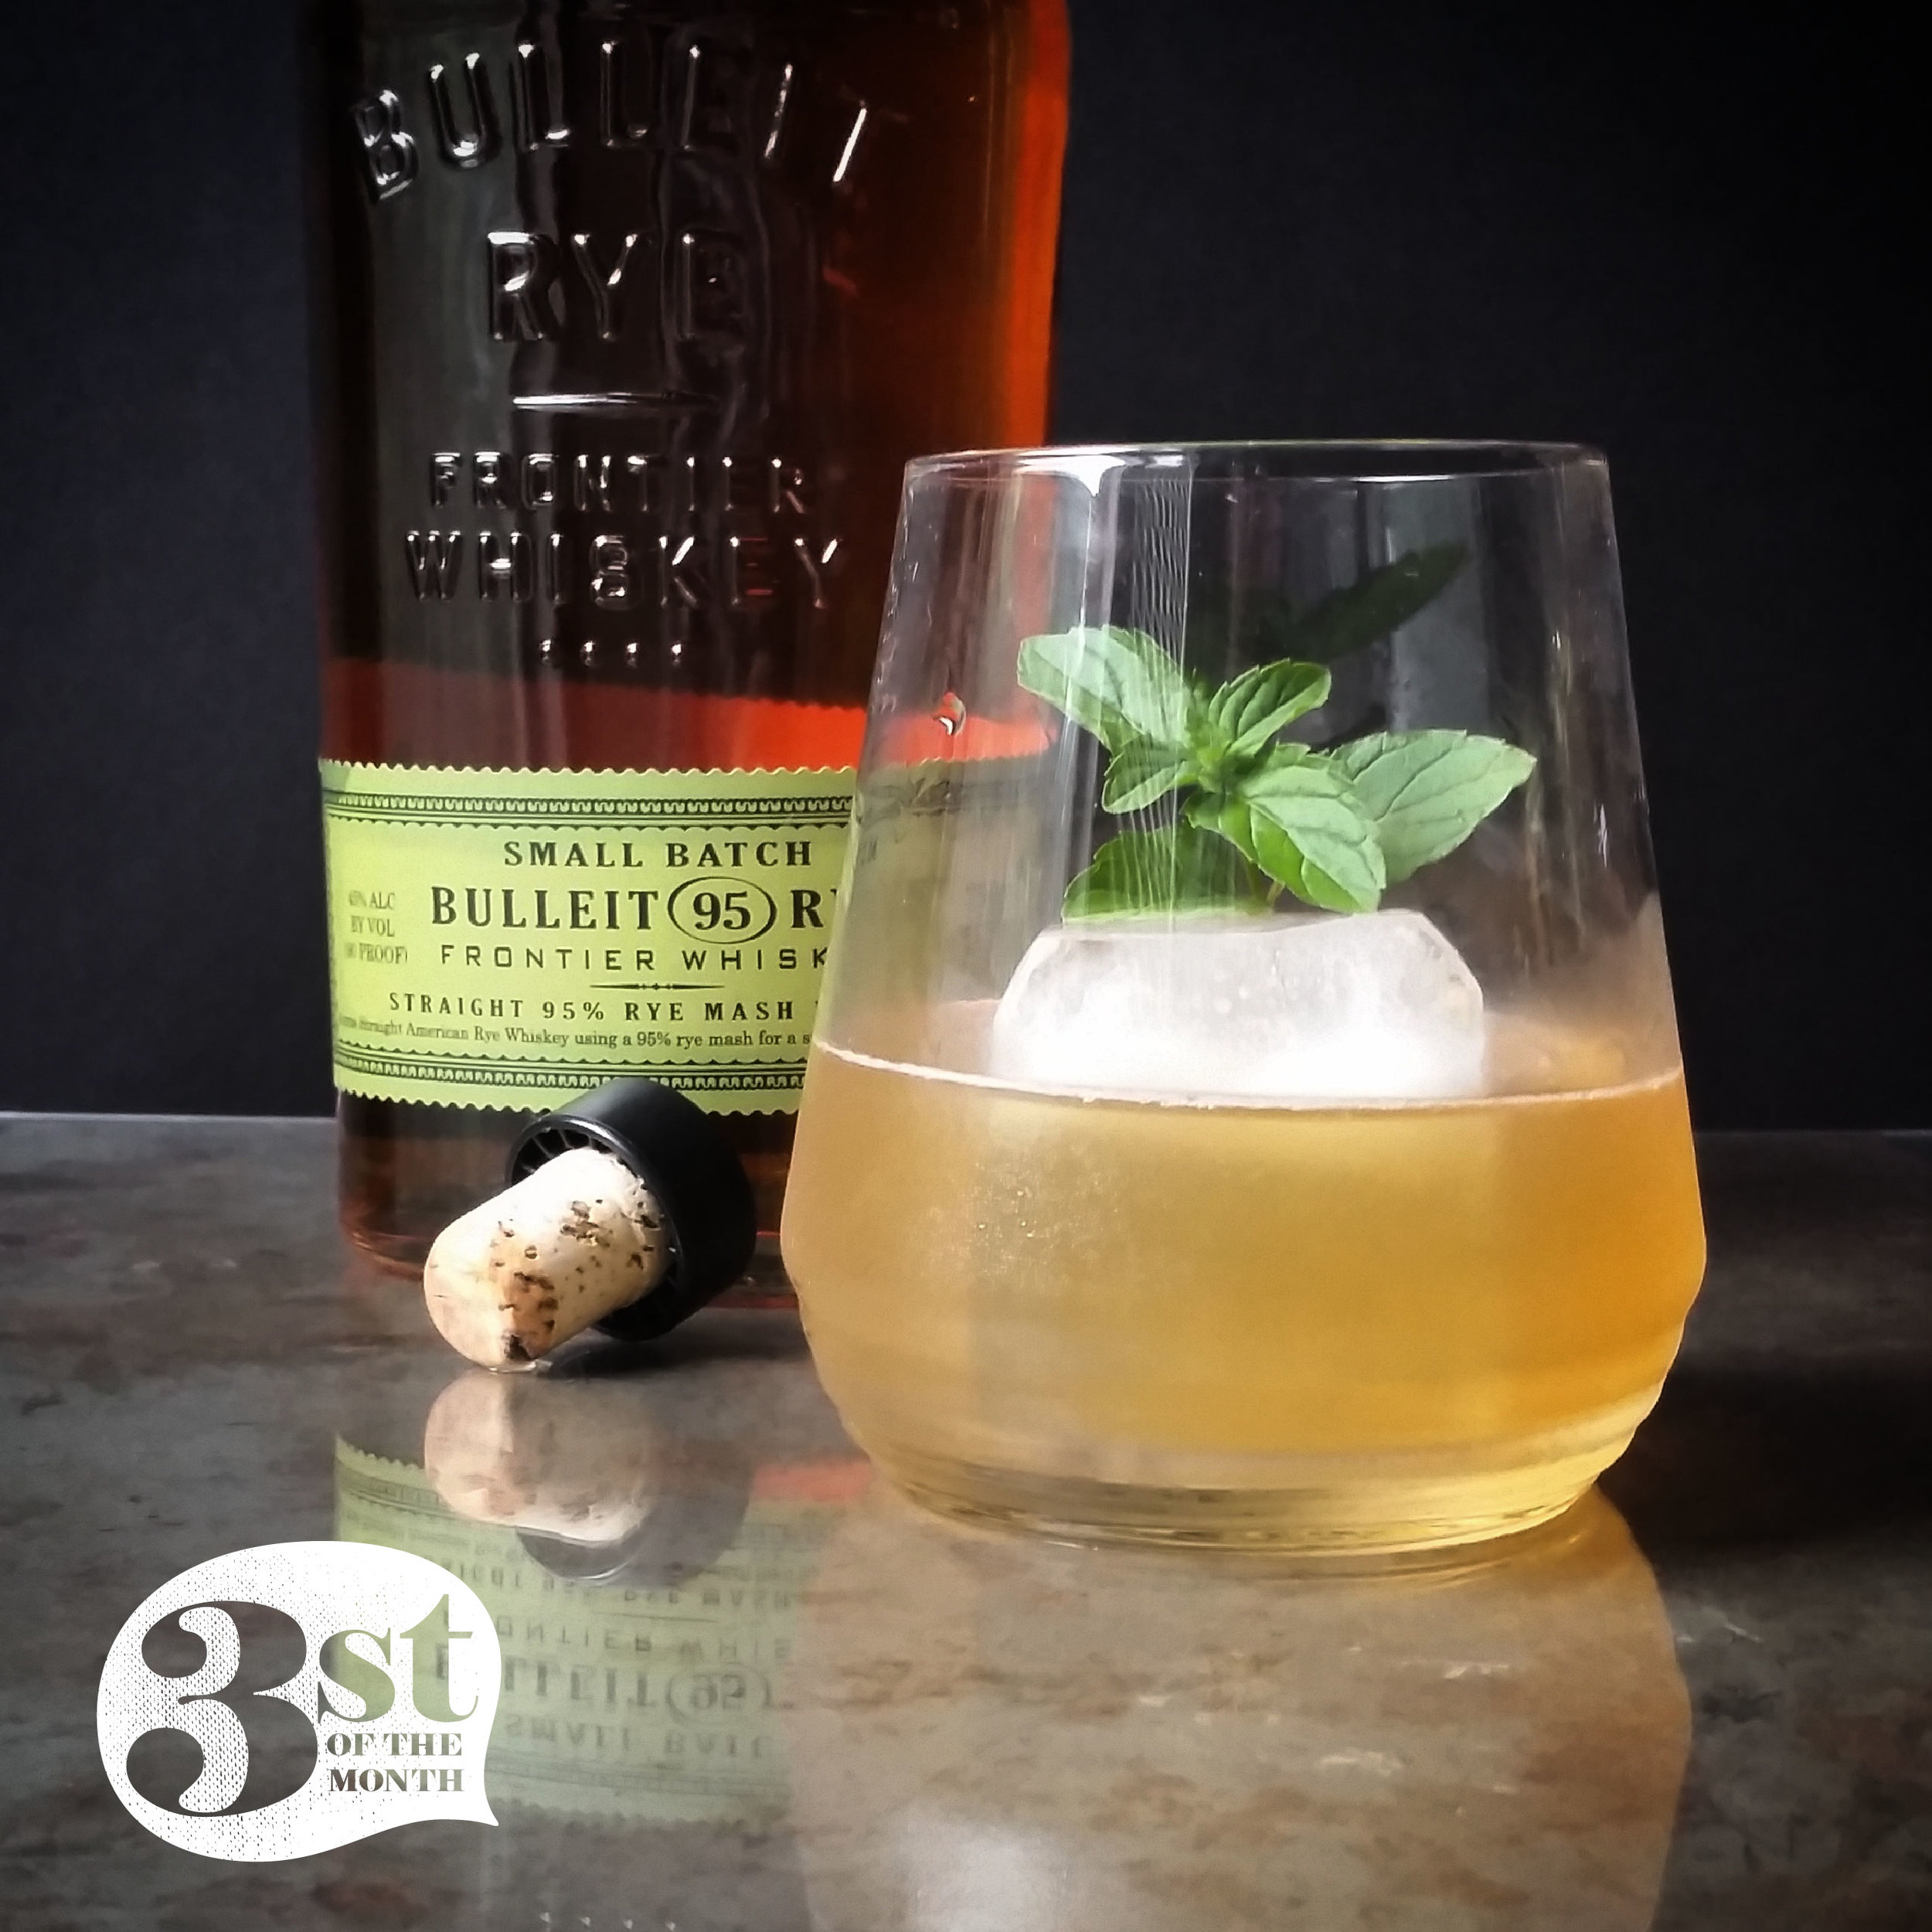 The Rye Tea cocktail from 3st of the Month - damn drinkable!